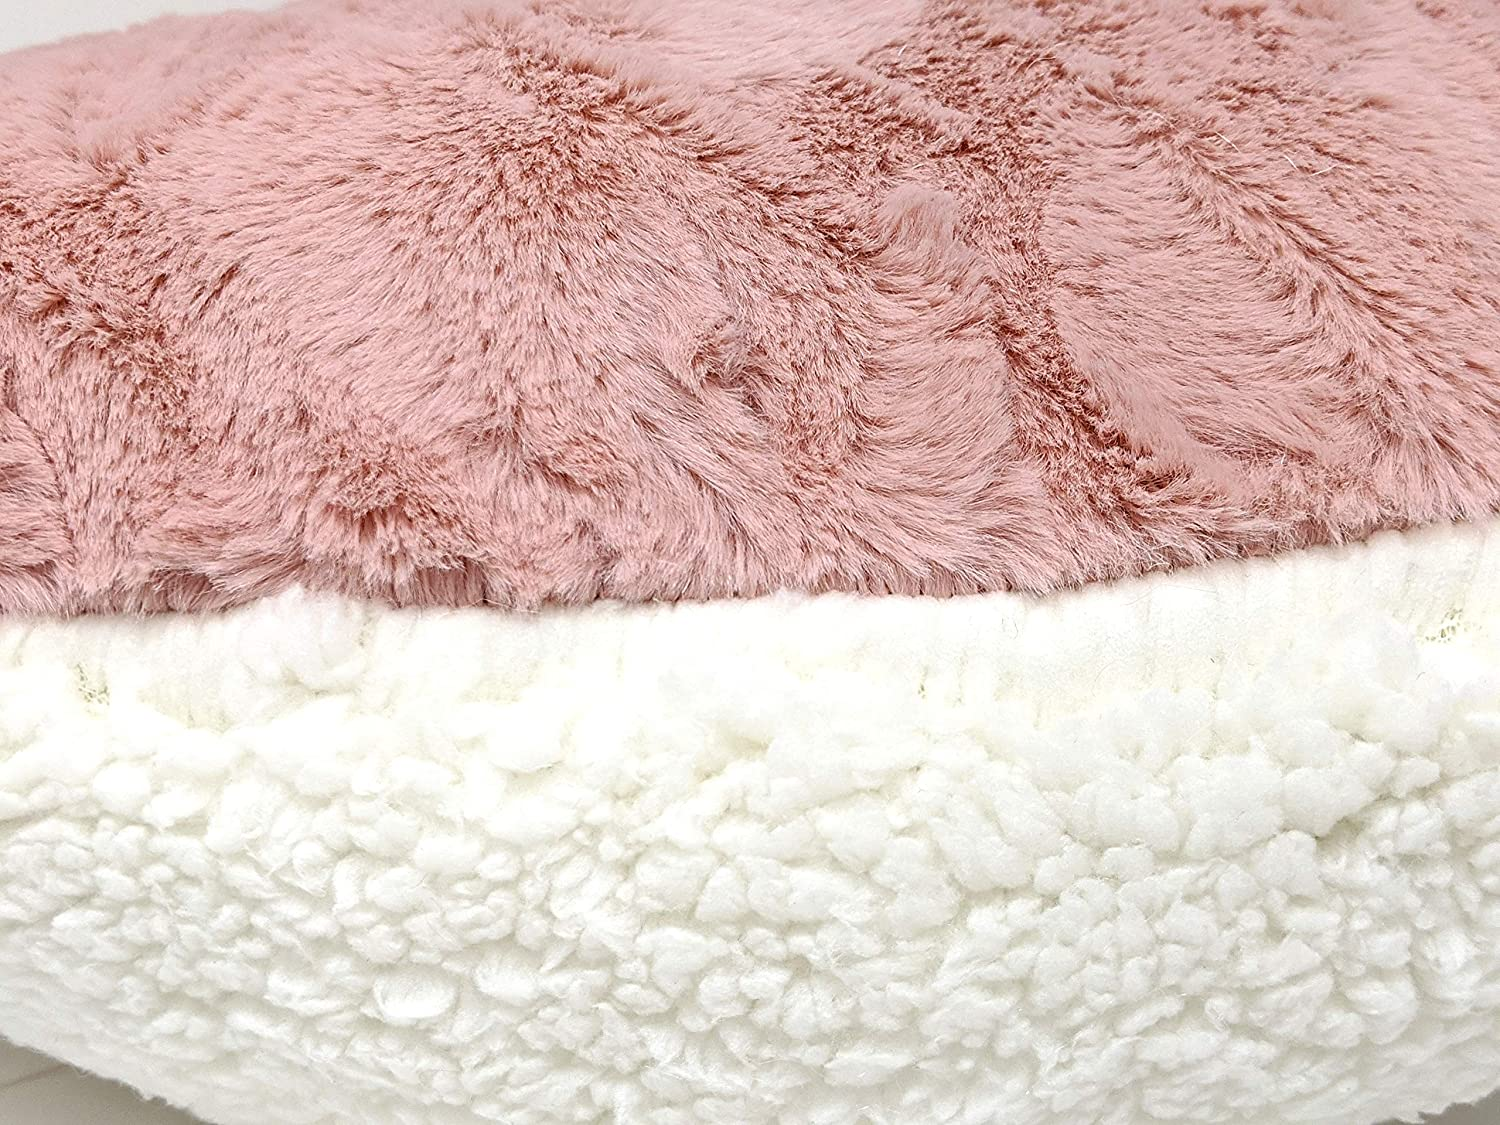 Pink//White One Size Tache Home Fashion #7-HeartPillow Faux Fur Throw Pillow Heart